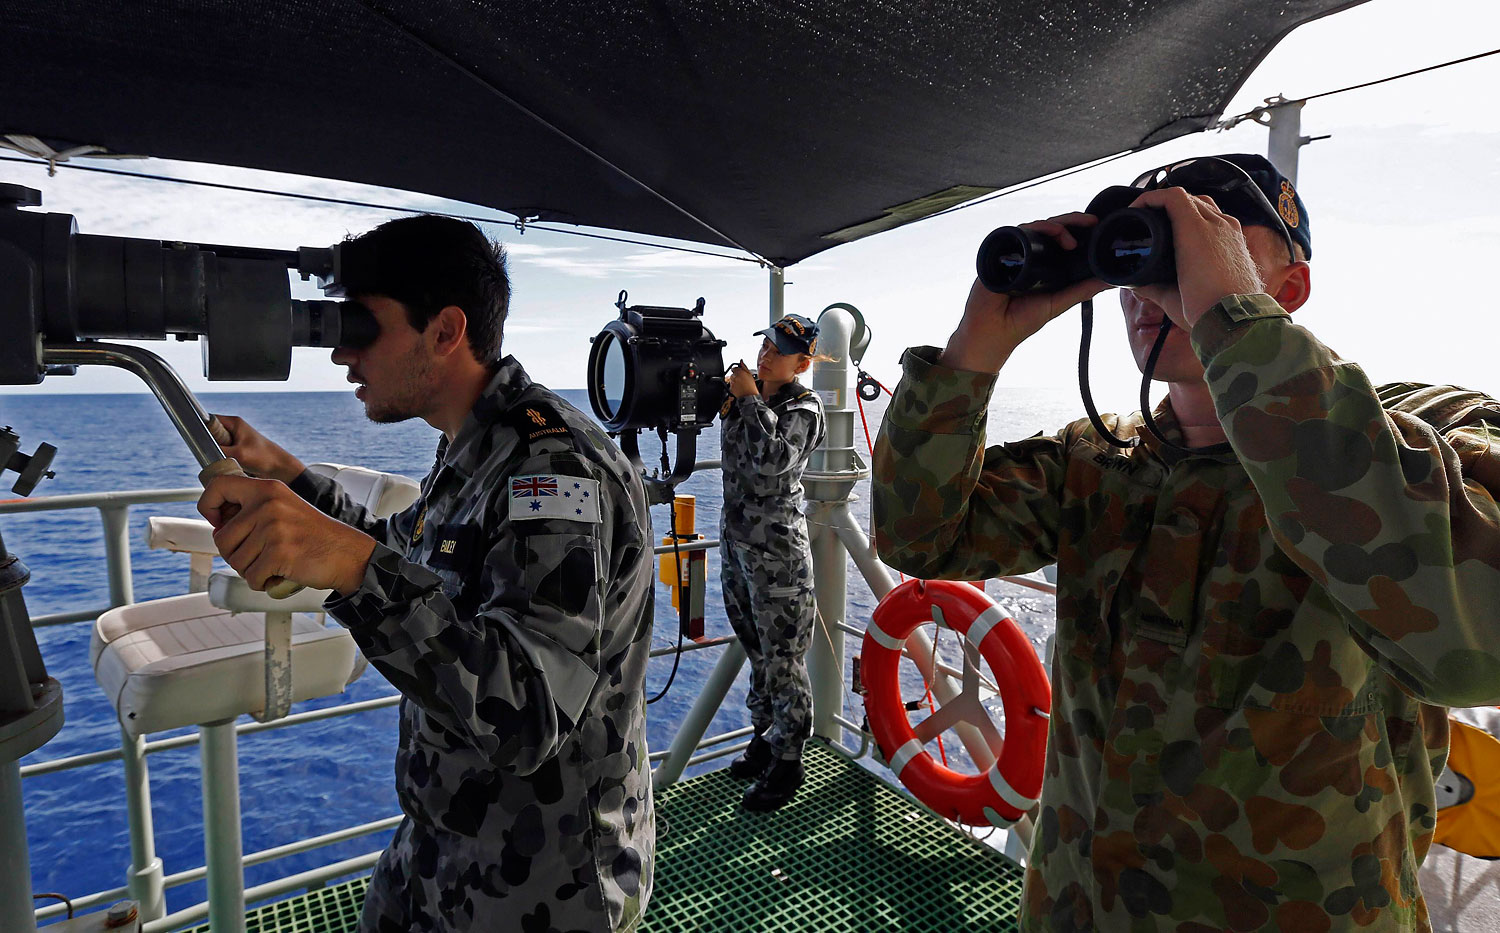 Crew members of the Australian navy ship H.M.A.S. Perth join the search for the missing Malaysian Airlines Flight MH370